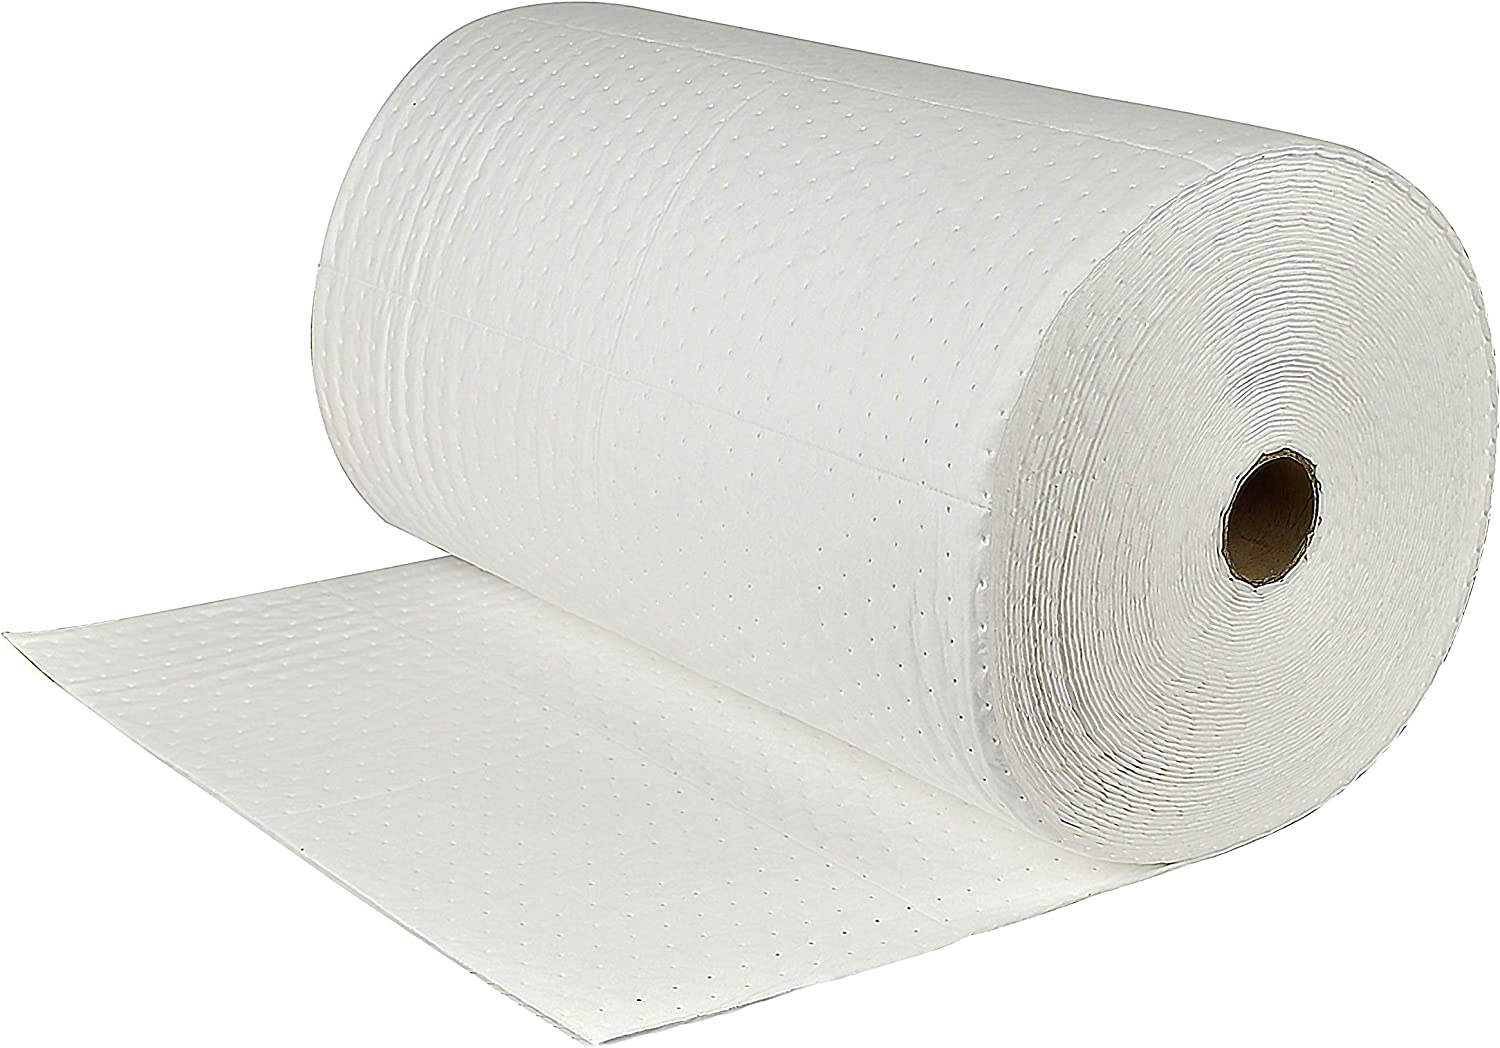 A IN Oil-Only Challenge the lowest price Absorbent Great interest Mat Absorbing Oil Heavyweight Roll